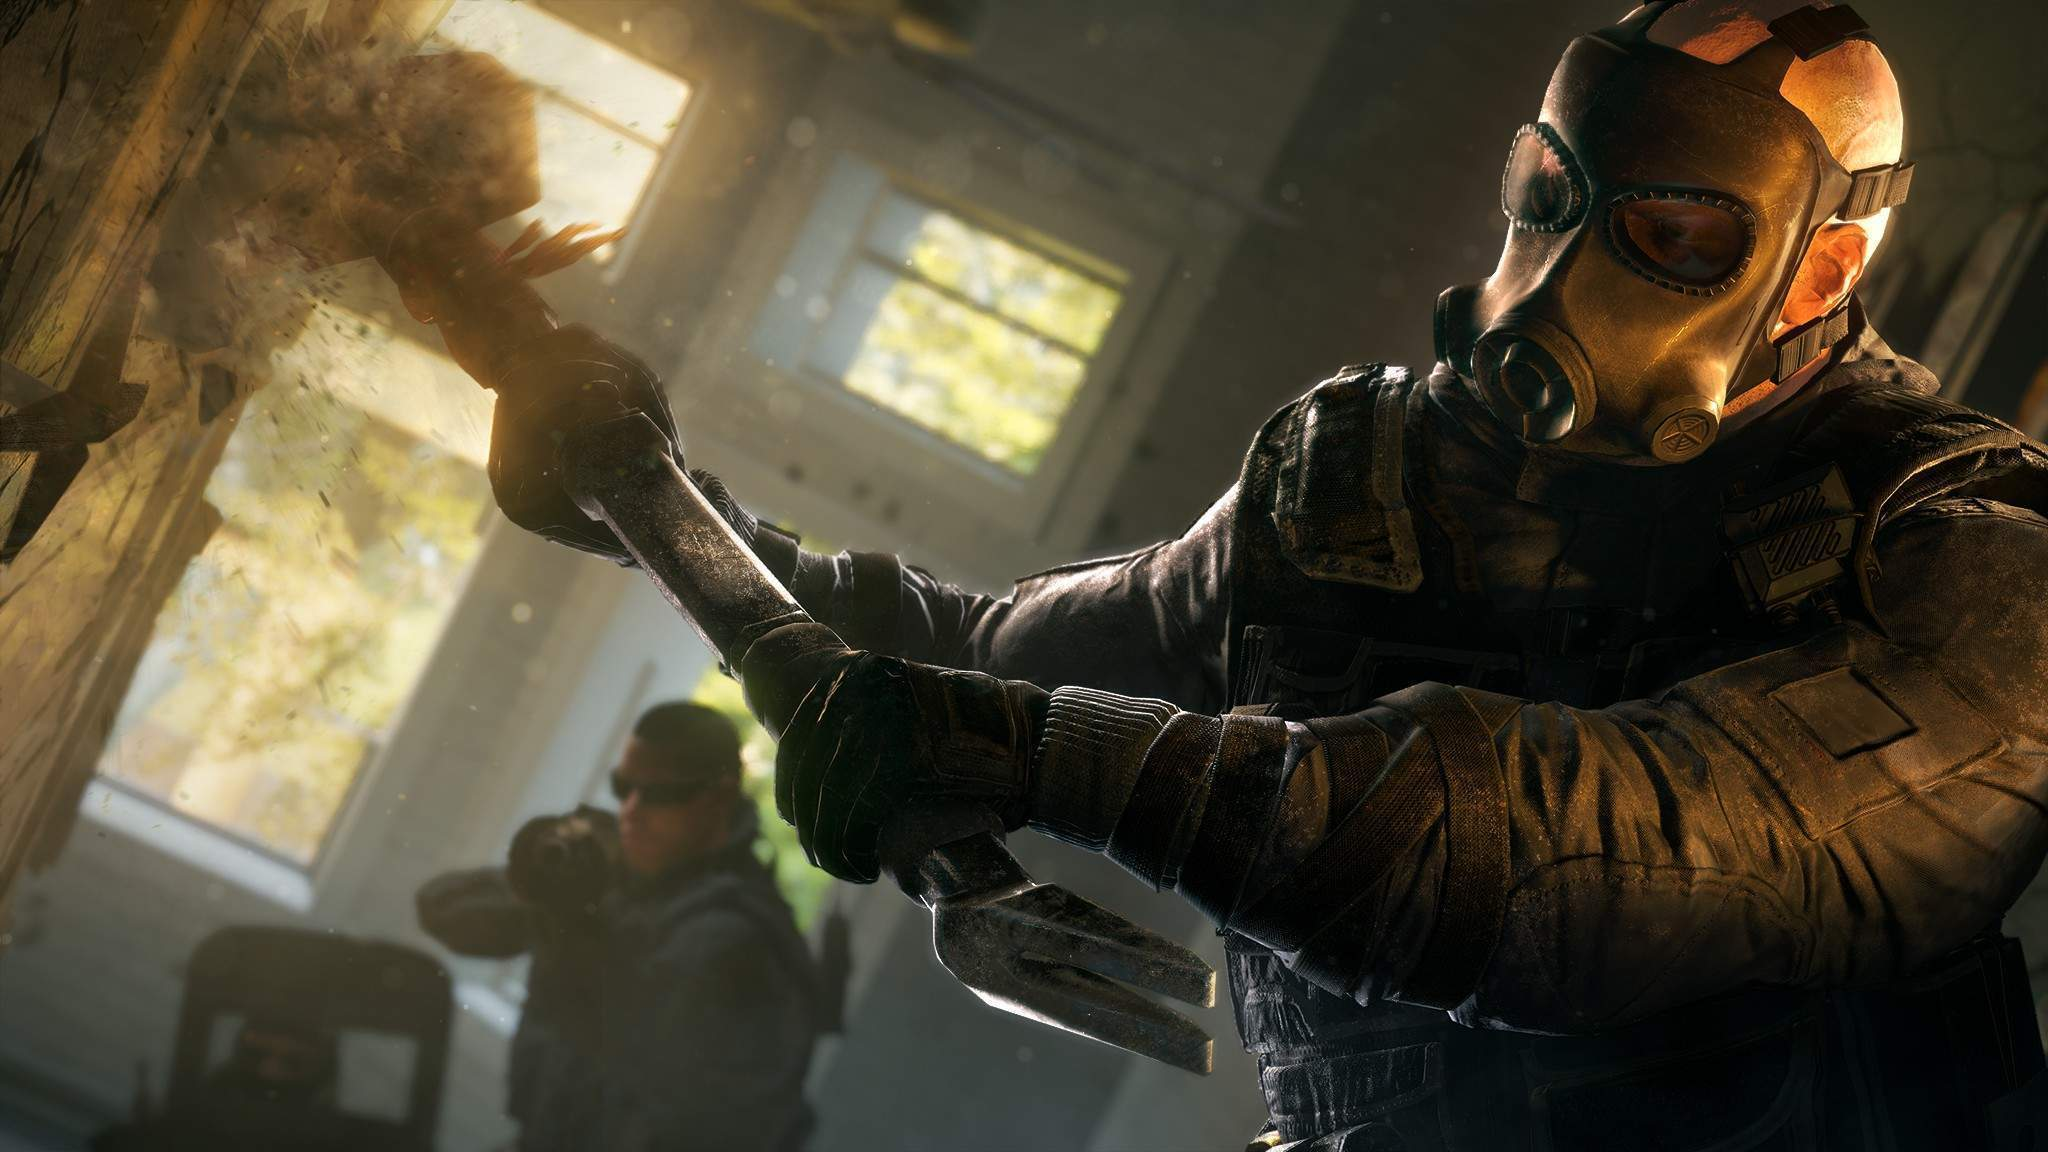 The unwanted rise of lightweight videogames